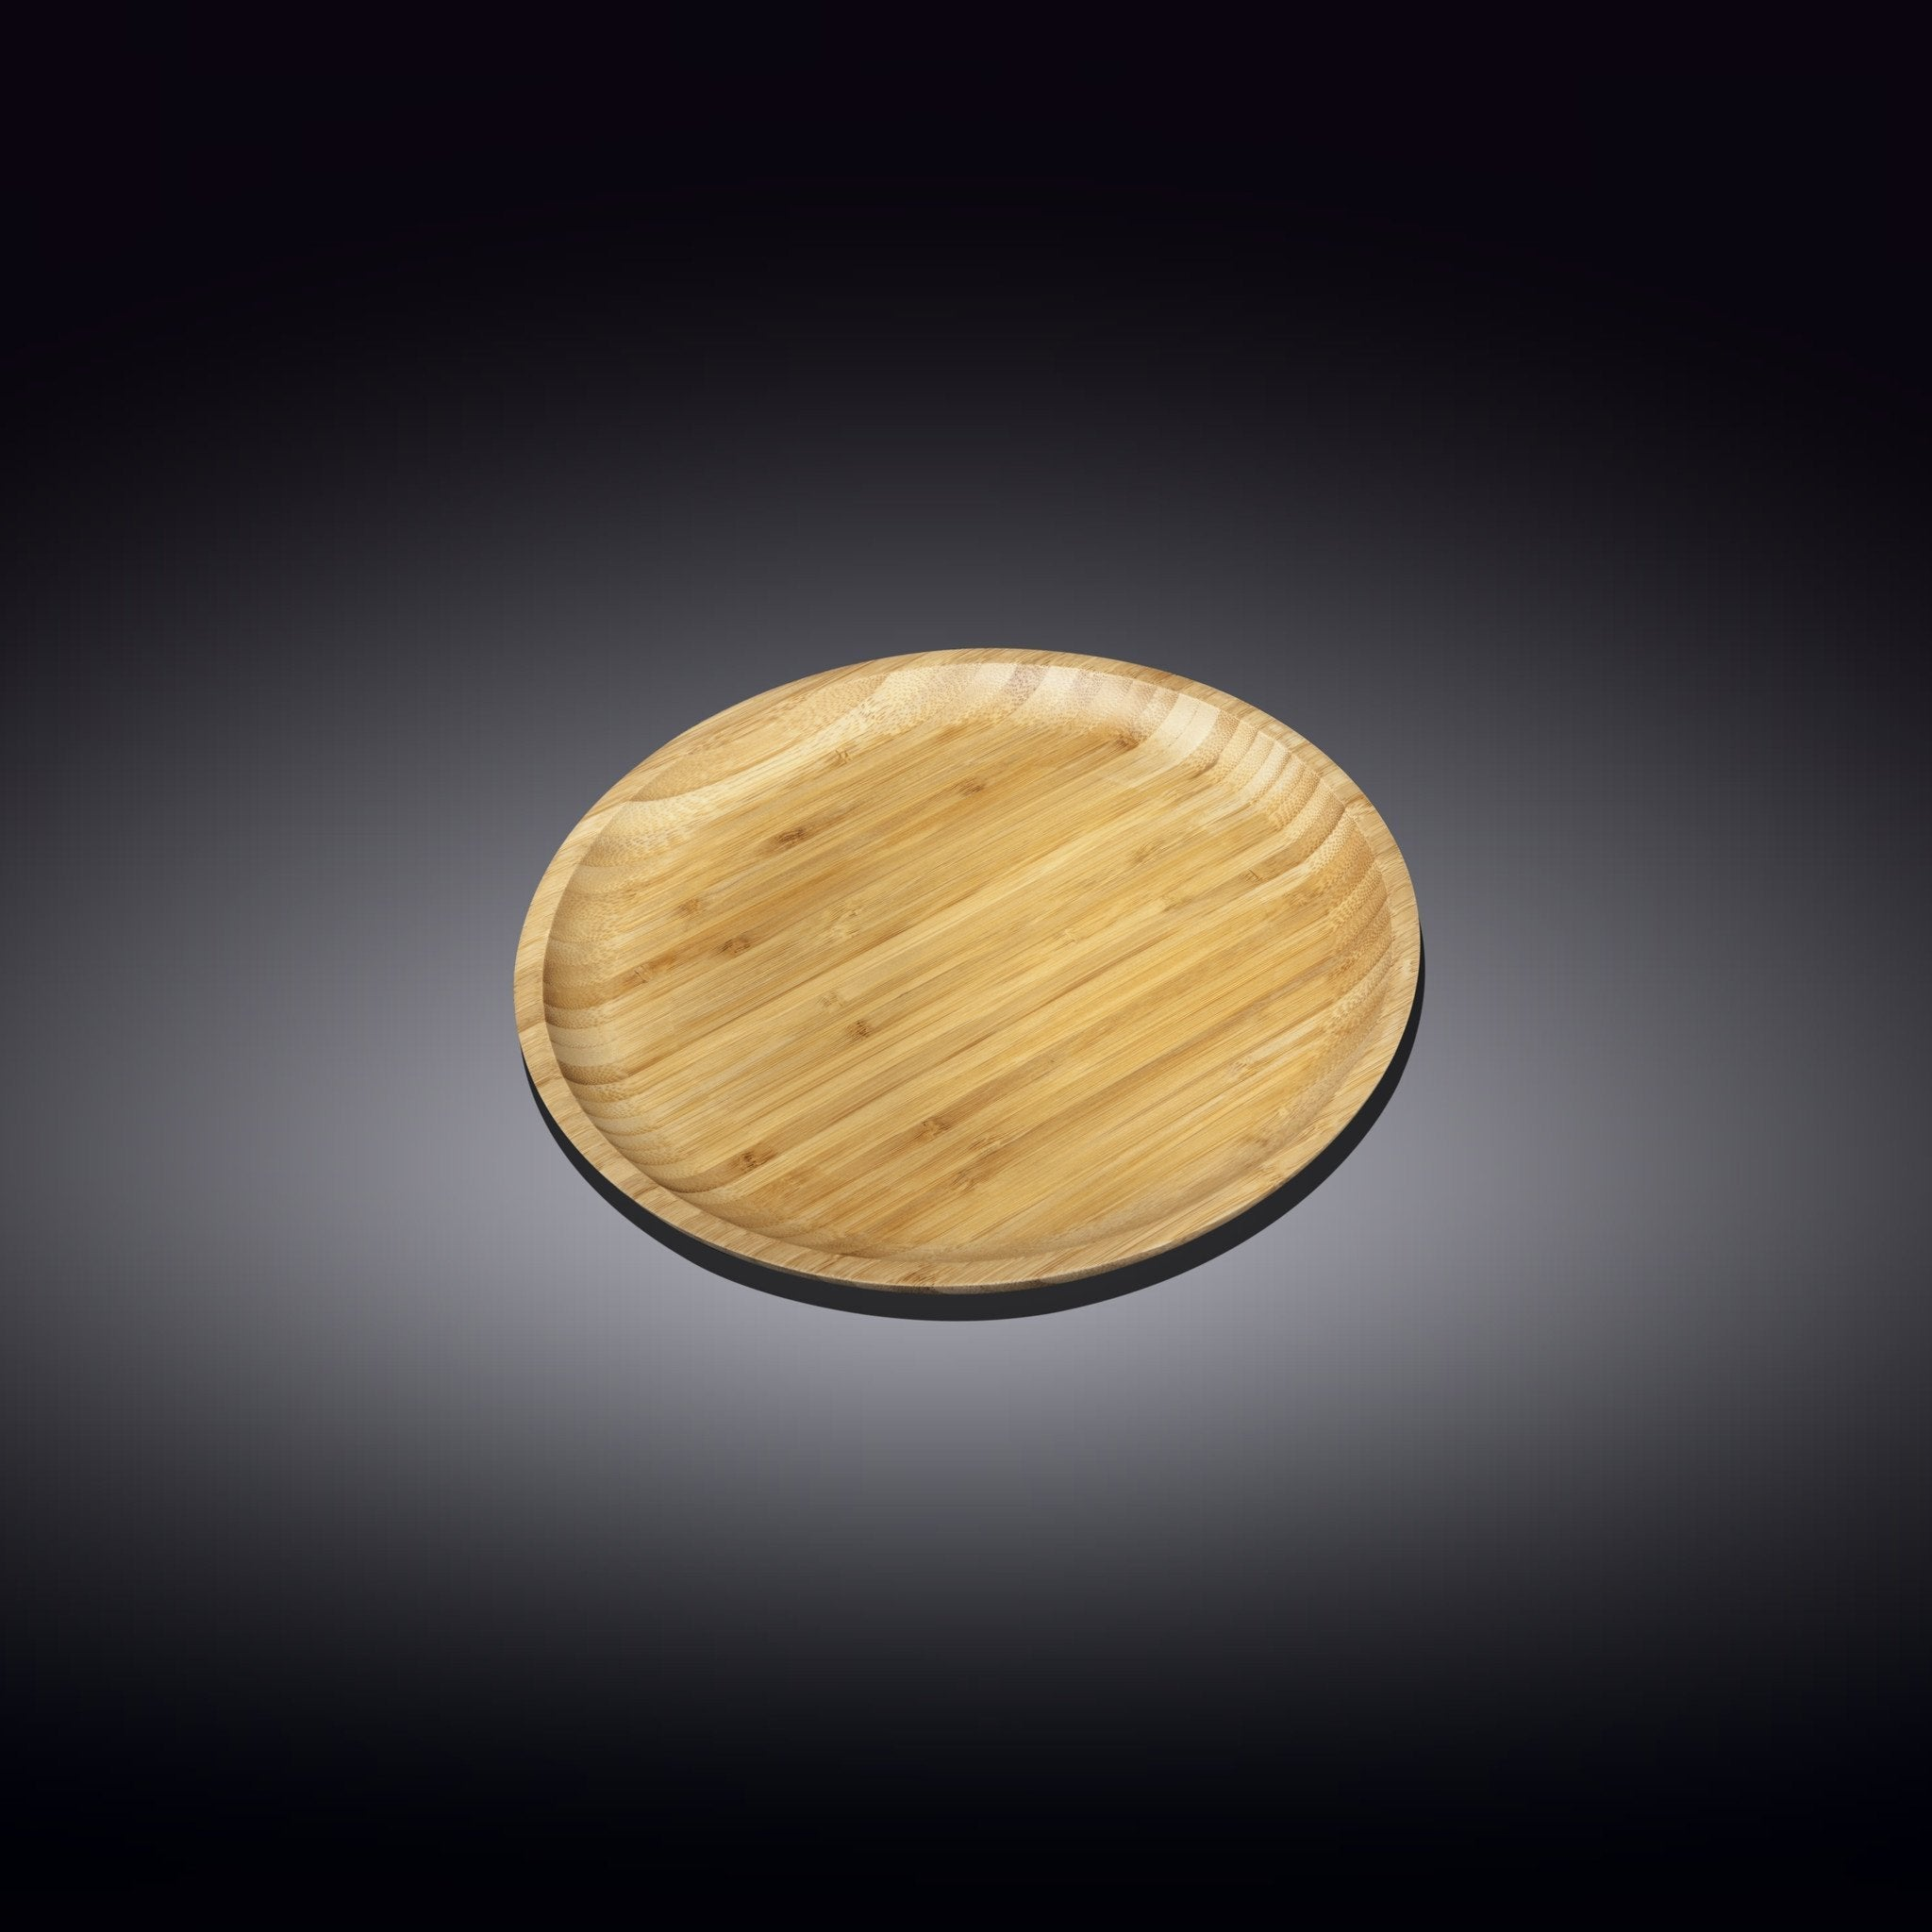 NATURAL BAMBOO PLATE 4"